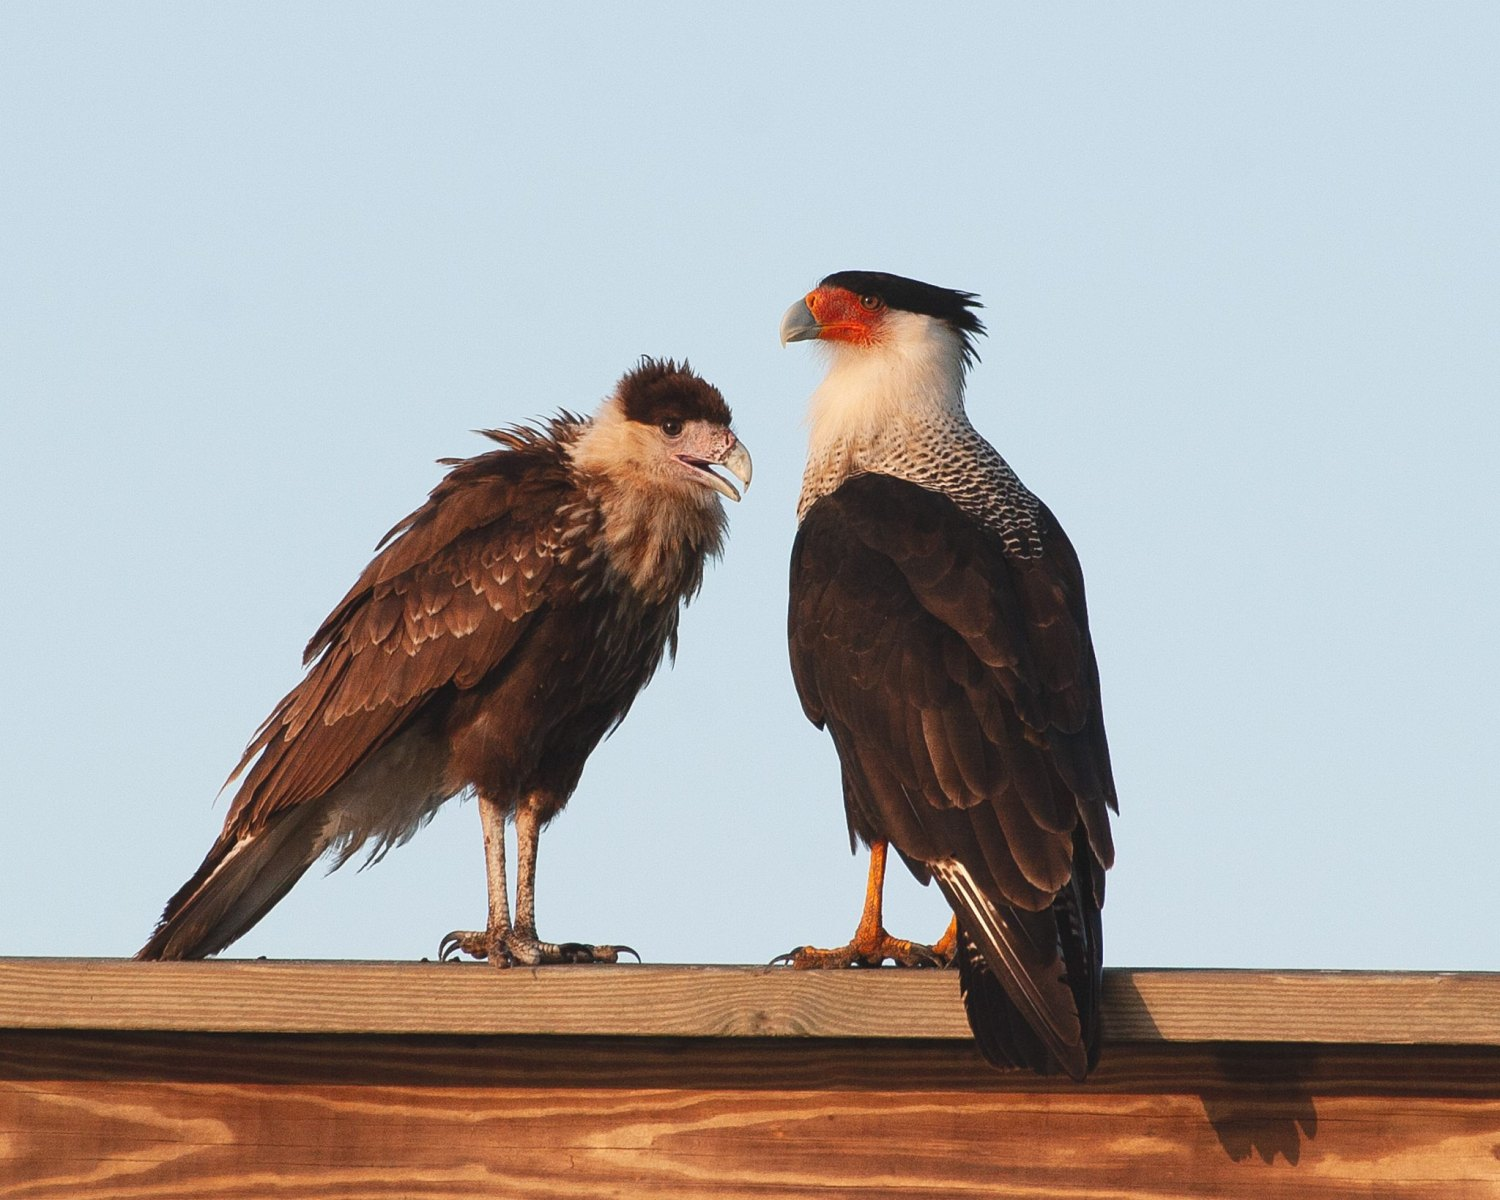 Crested Caracaras by Tsquare32926